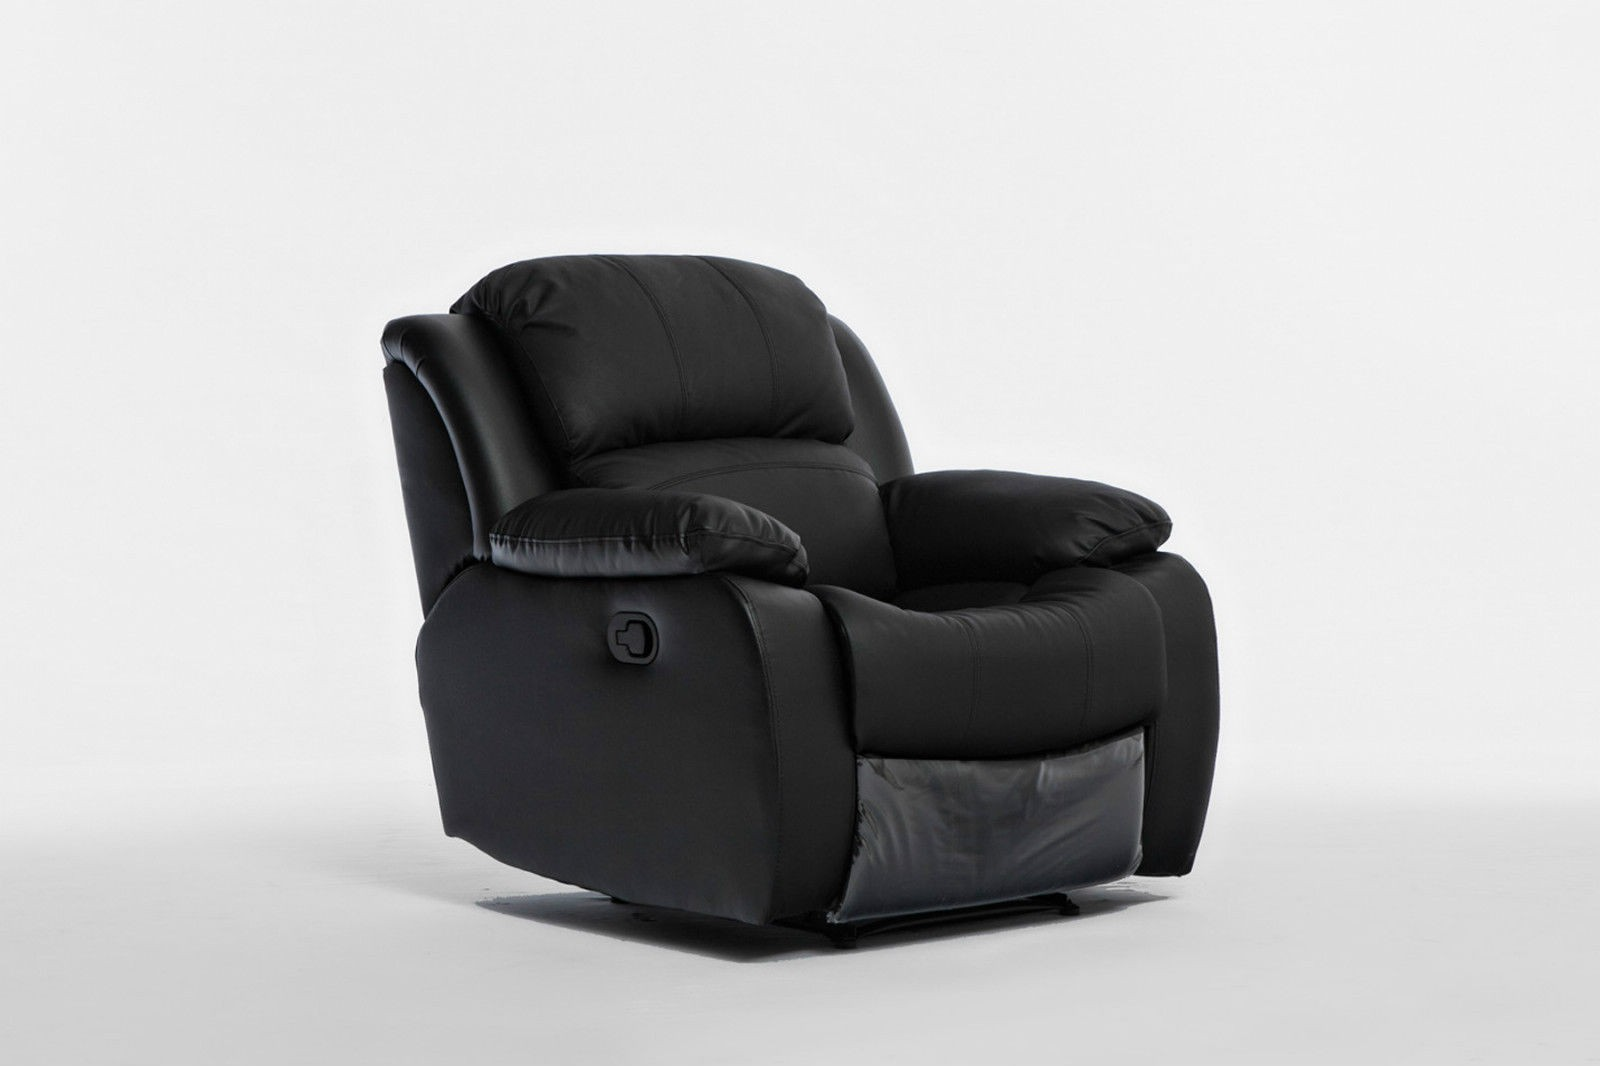 brand new black leather single seater chair recliner couch lounge sofa